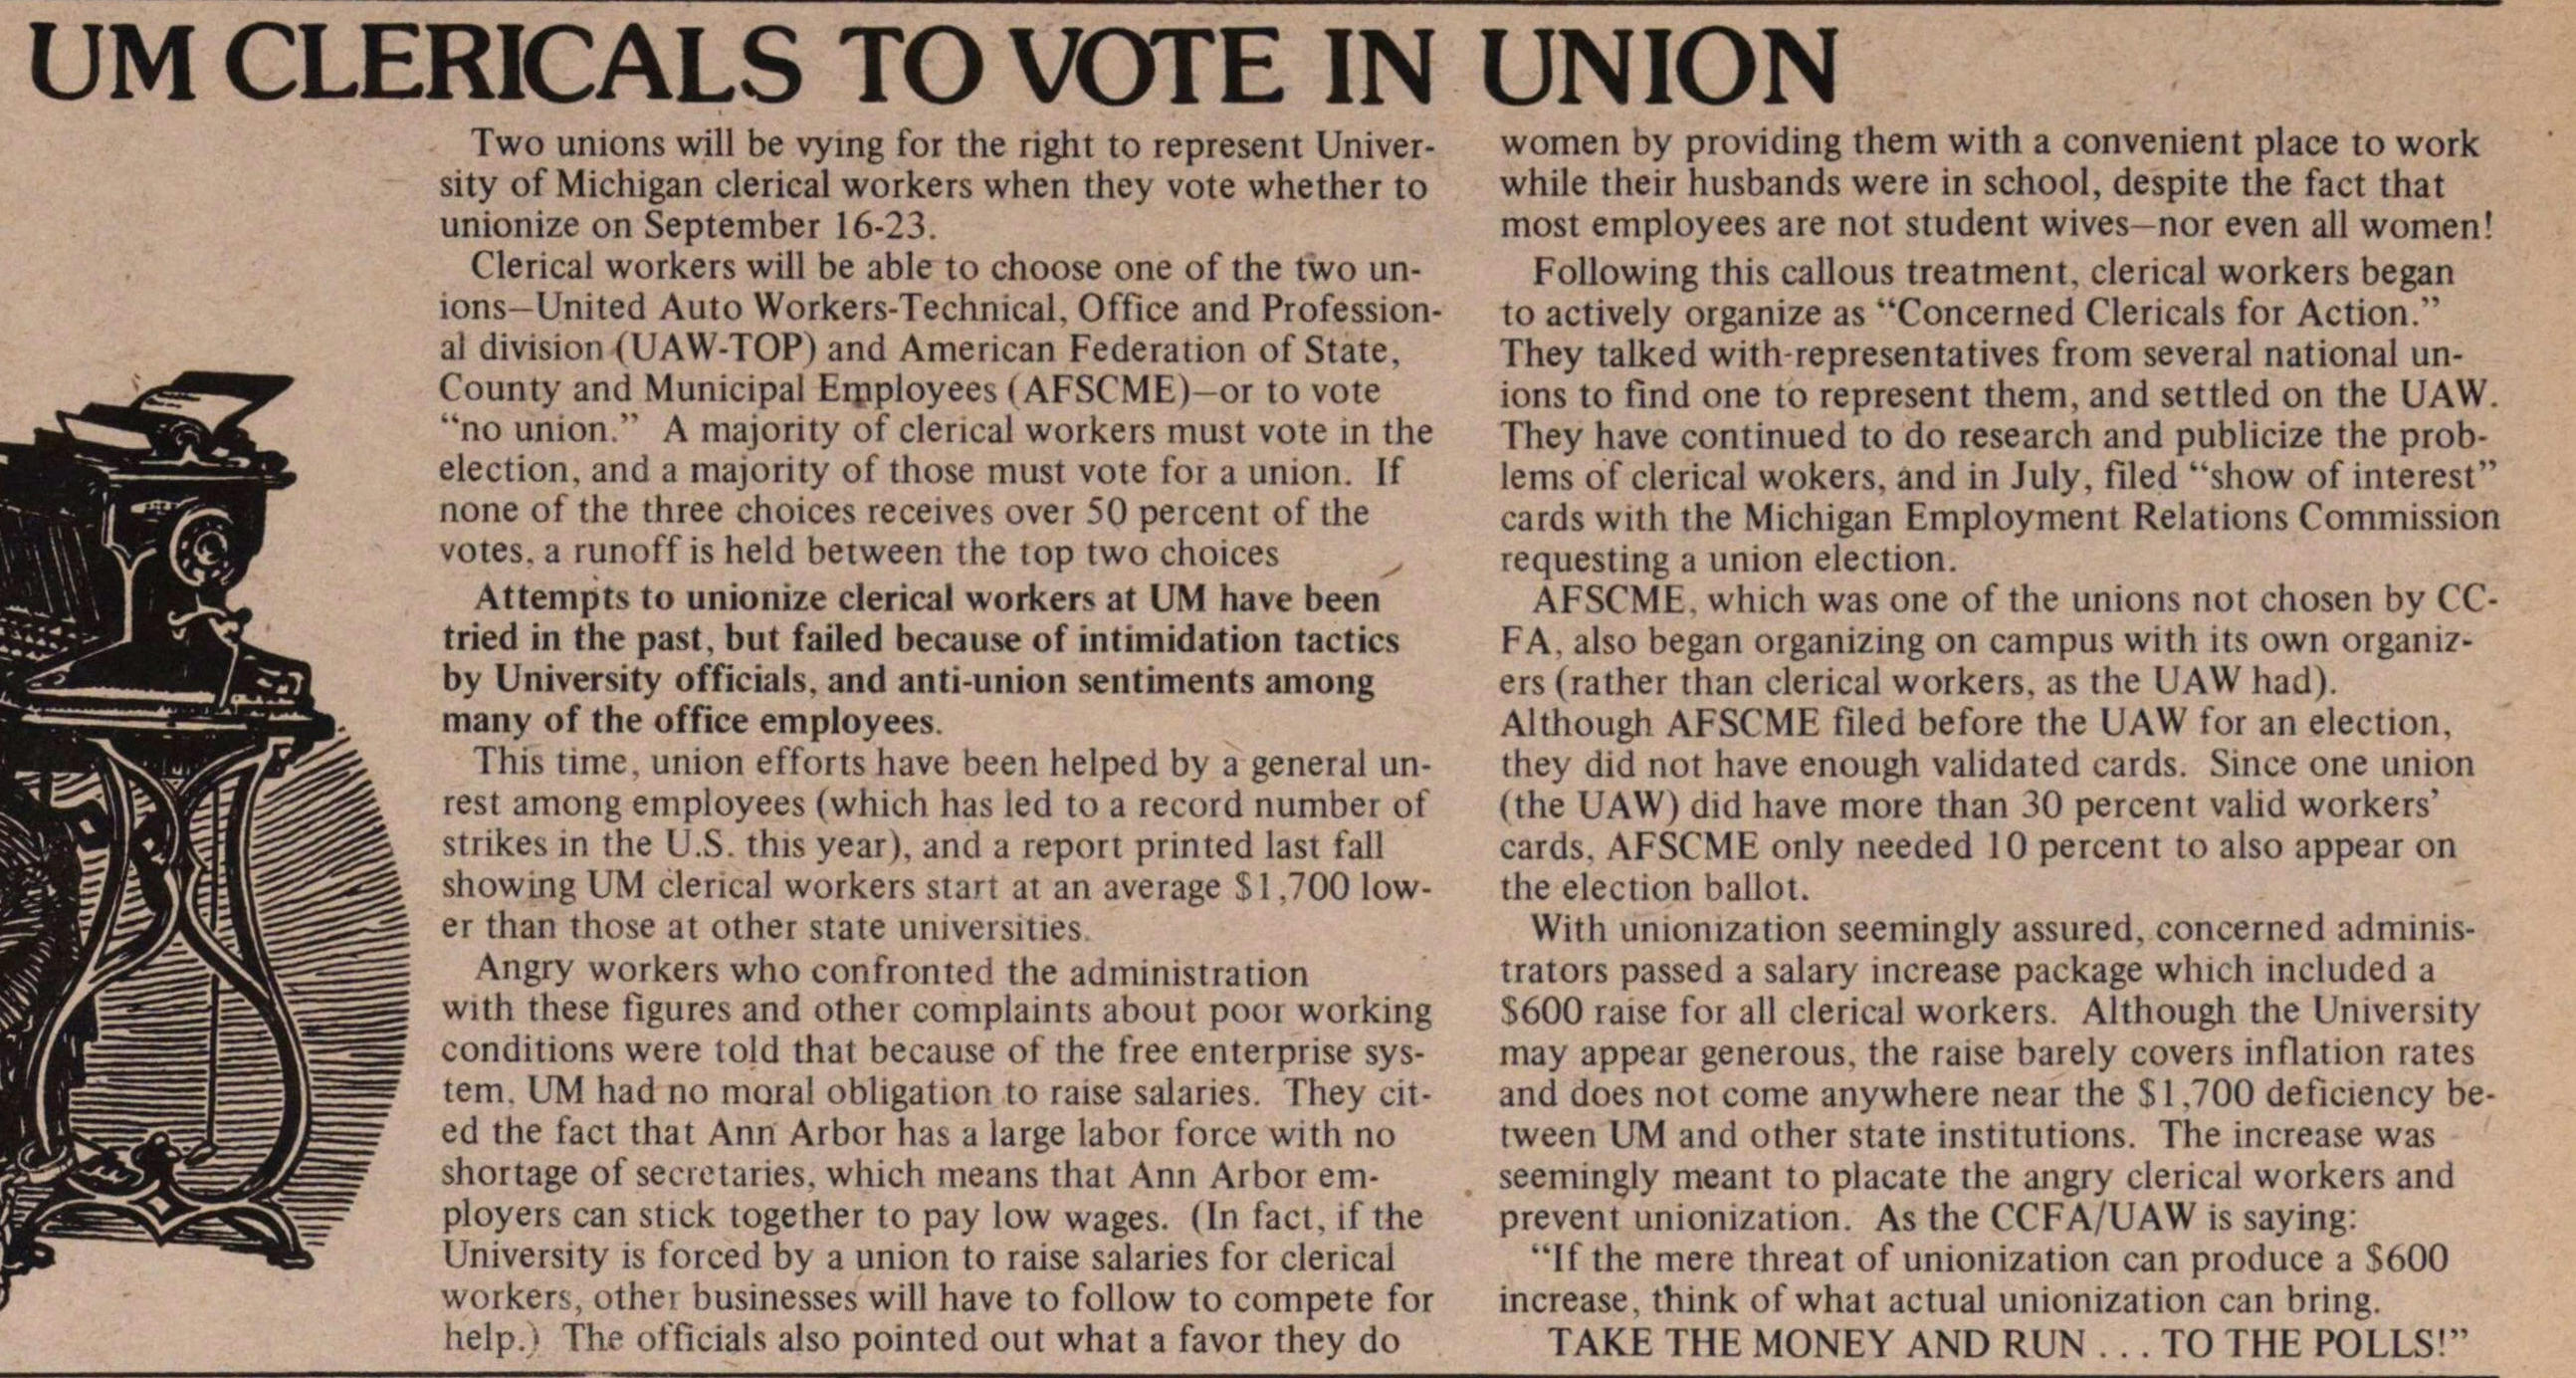 Um Clericals To Vote In Union image